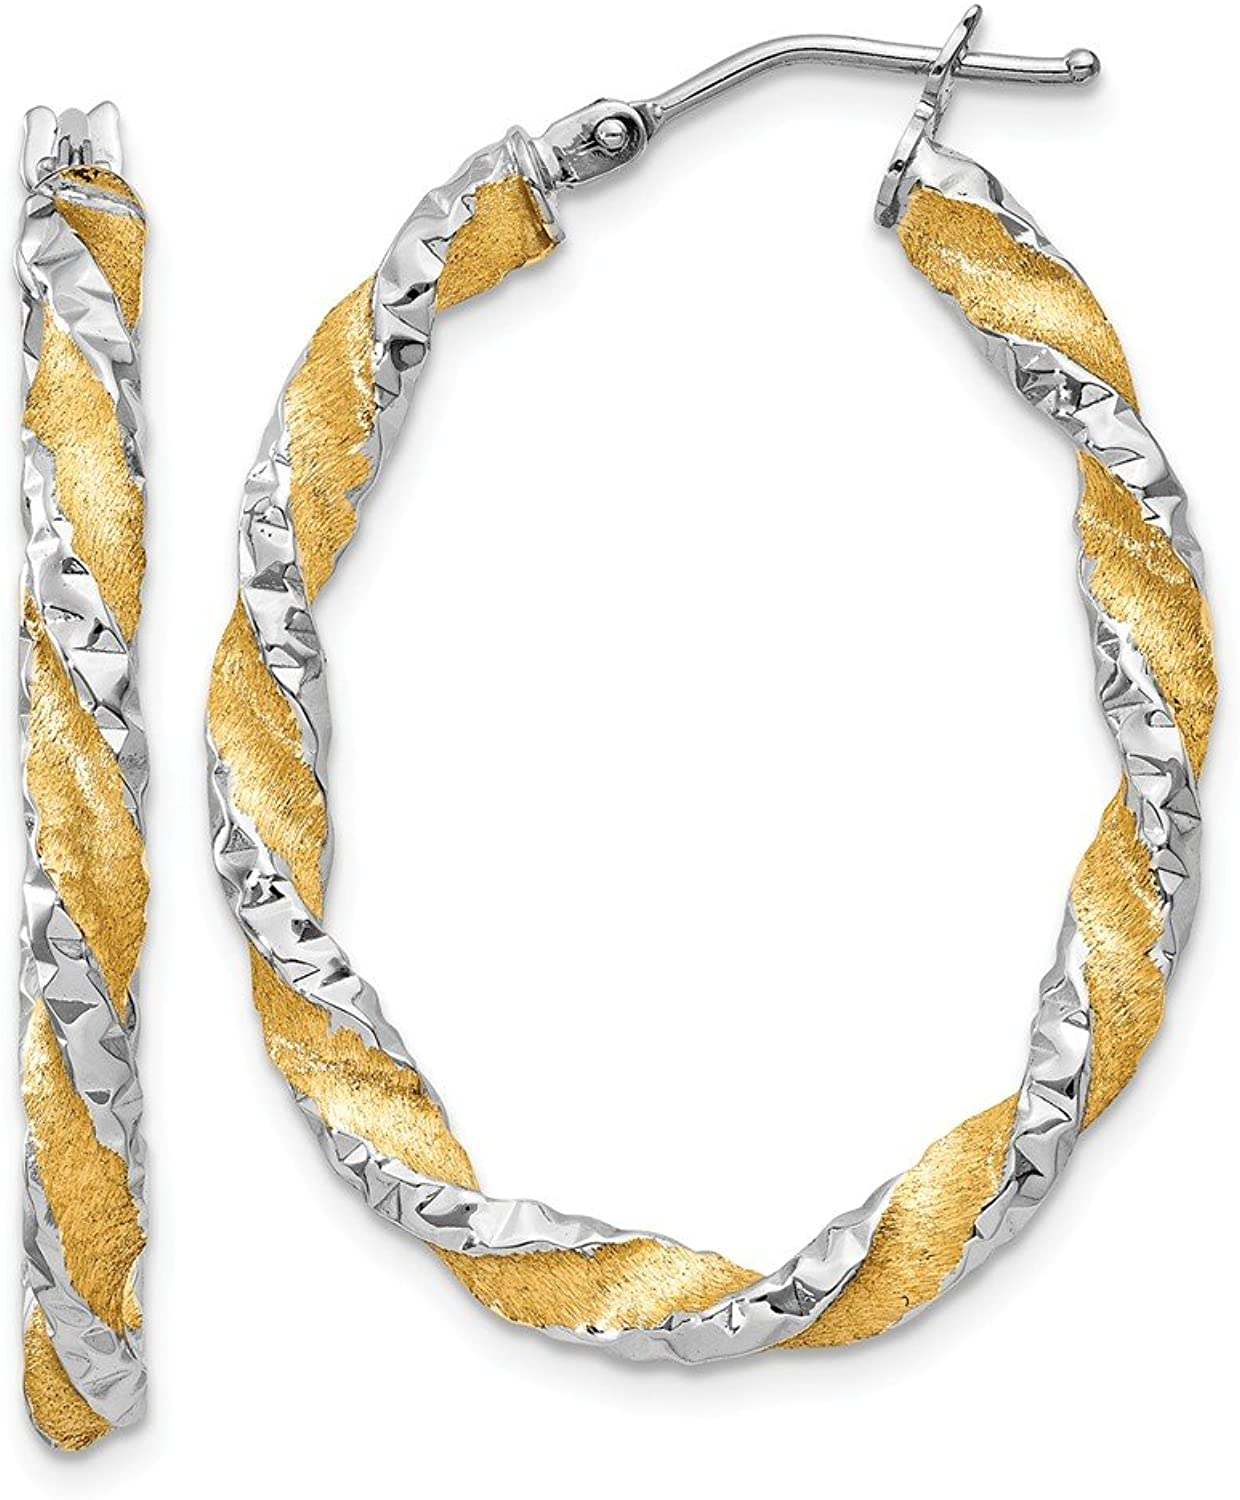 Beautiful Yellow gold 14K Yellowgold 14k & Rhodium Twisted Hoop Earrings